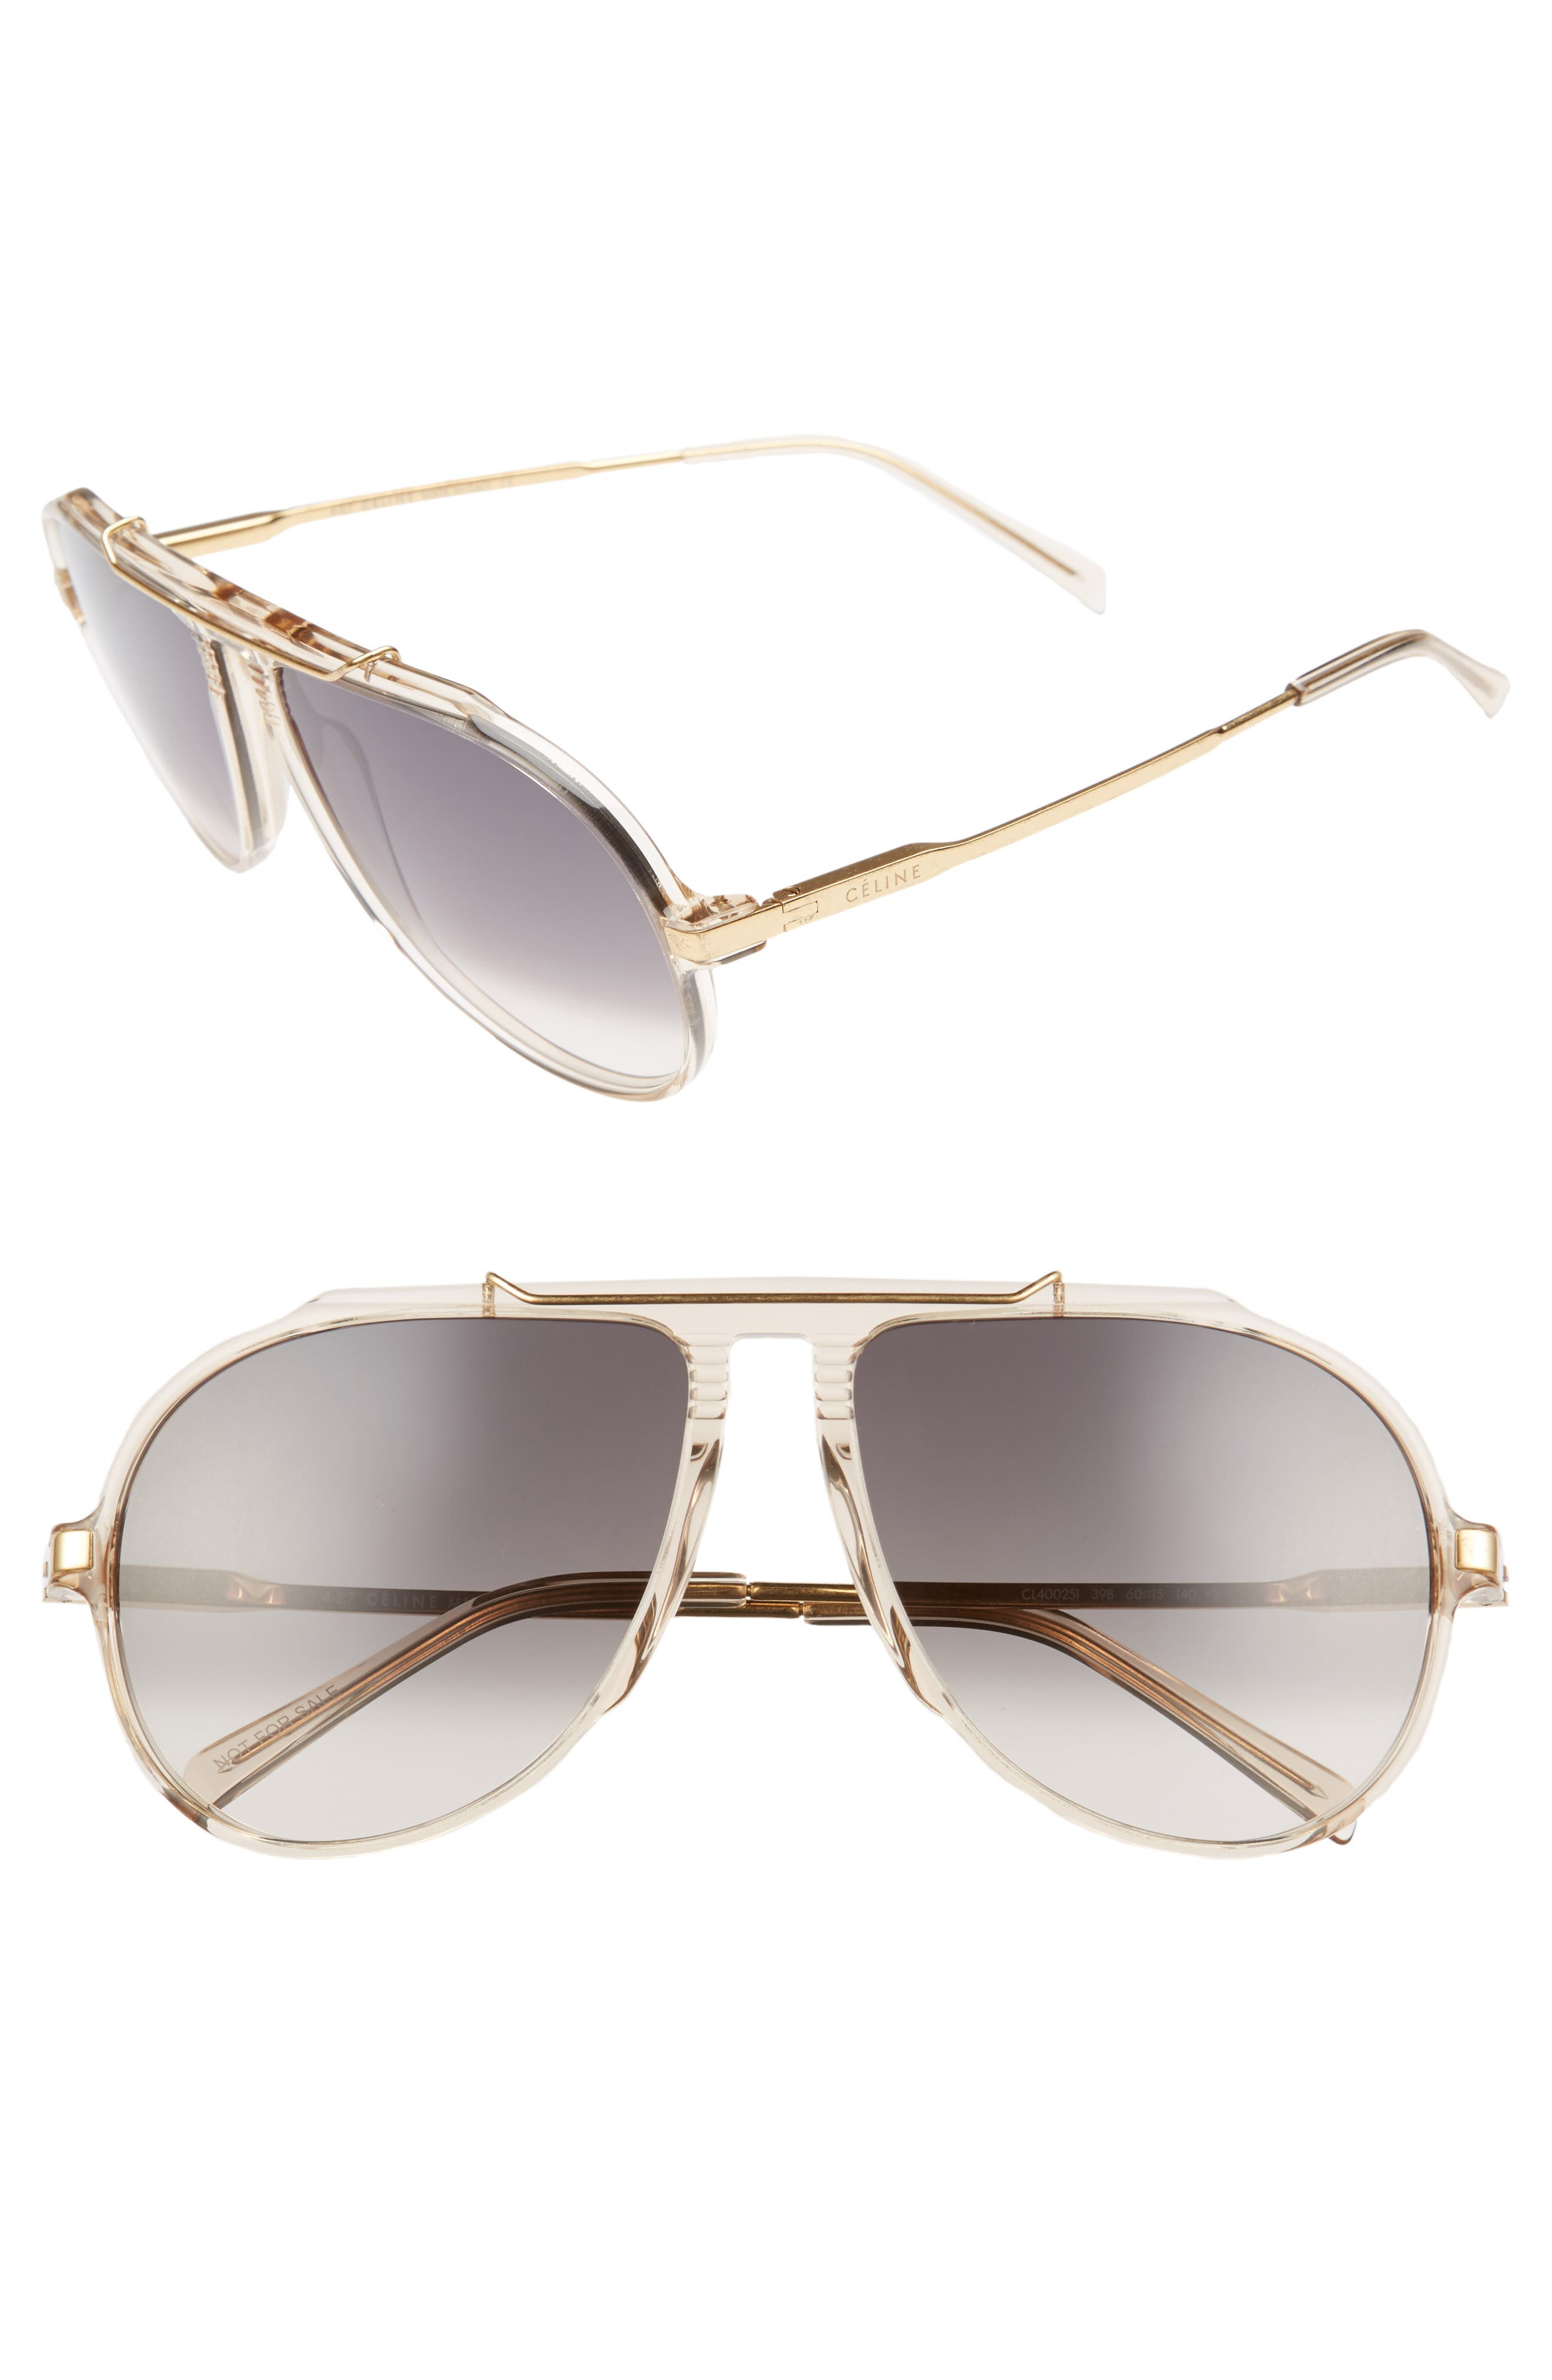 60mm Gradient Aviator Sunglasses,                         Main,                         color, Champagne/ Gold/ Green